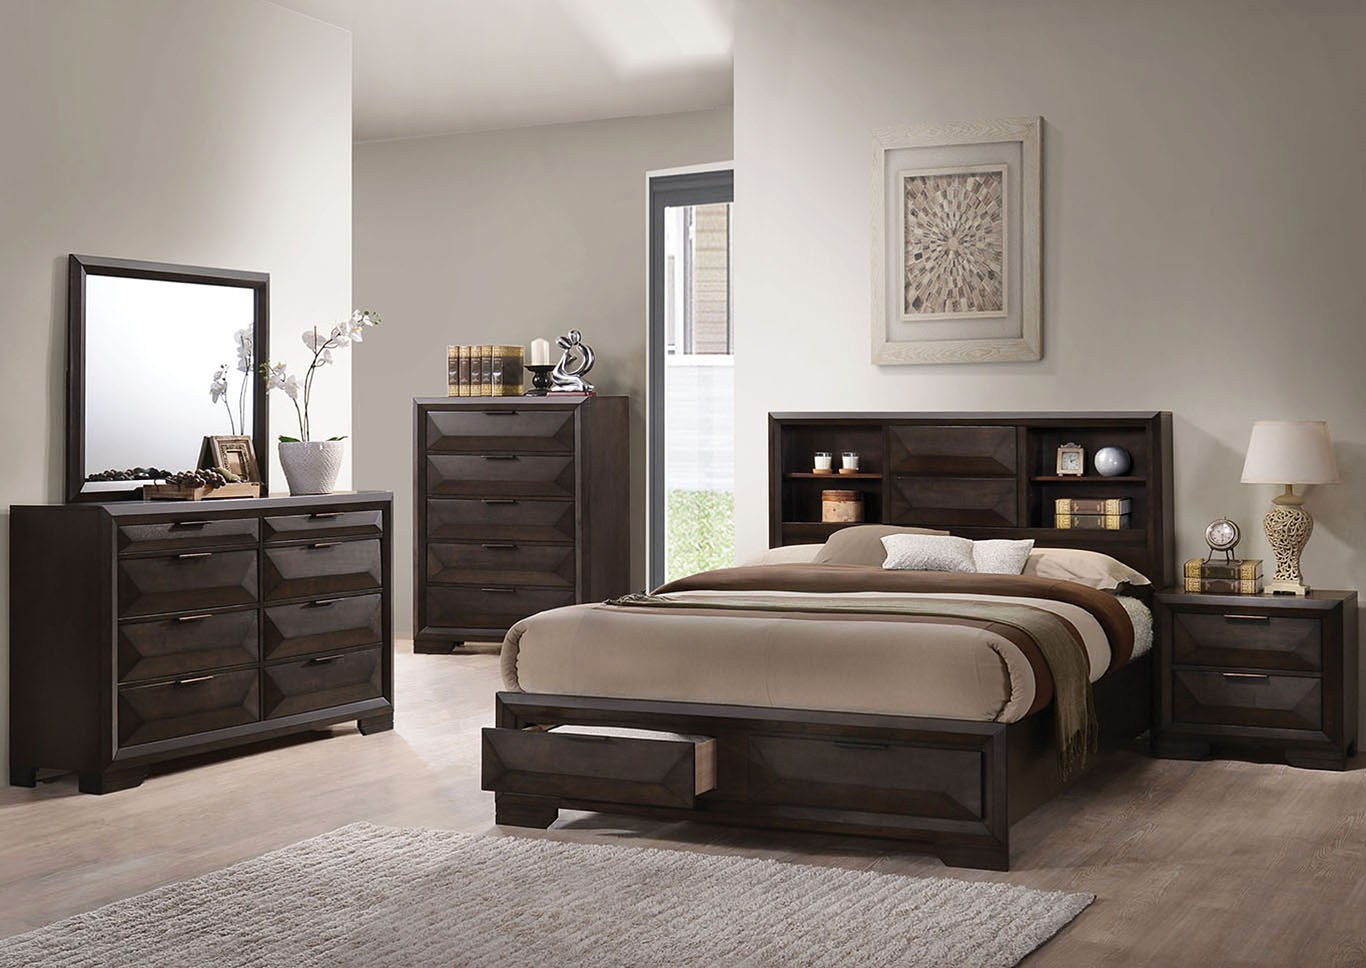 Merveille Espresso Queen Bed,Acme